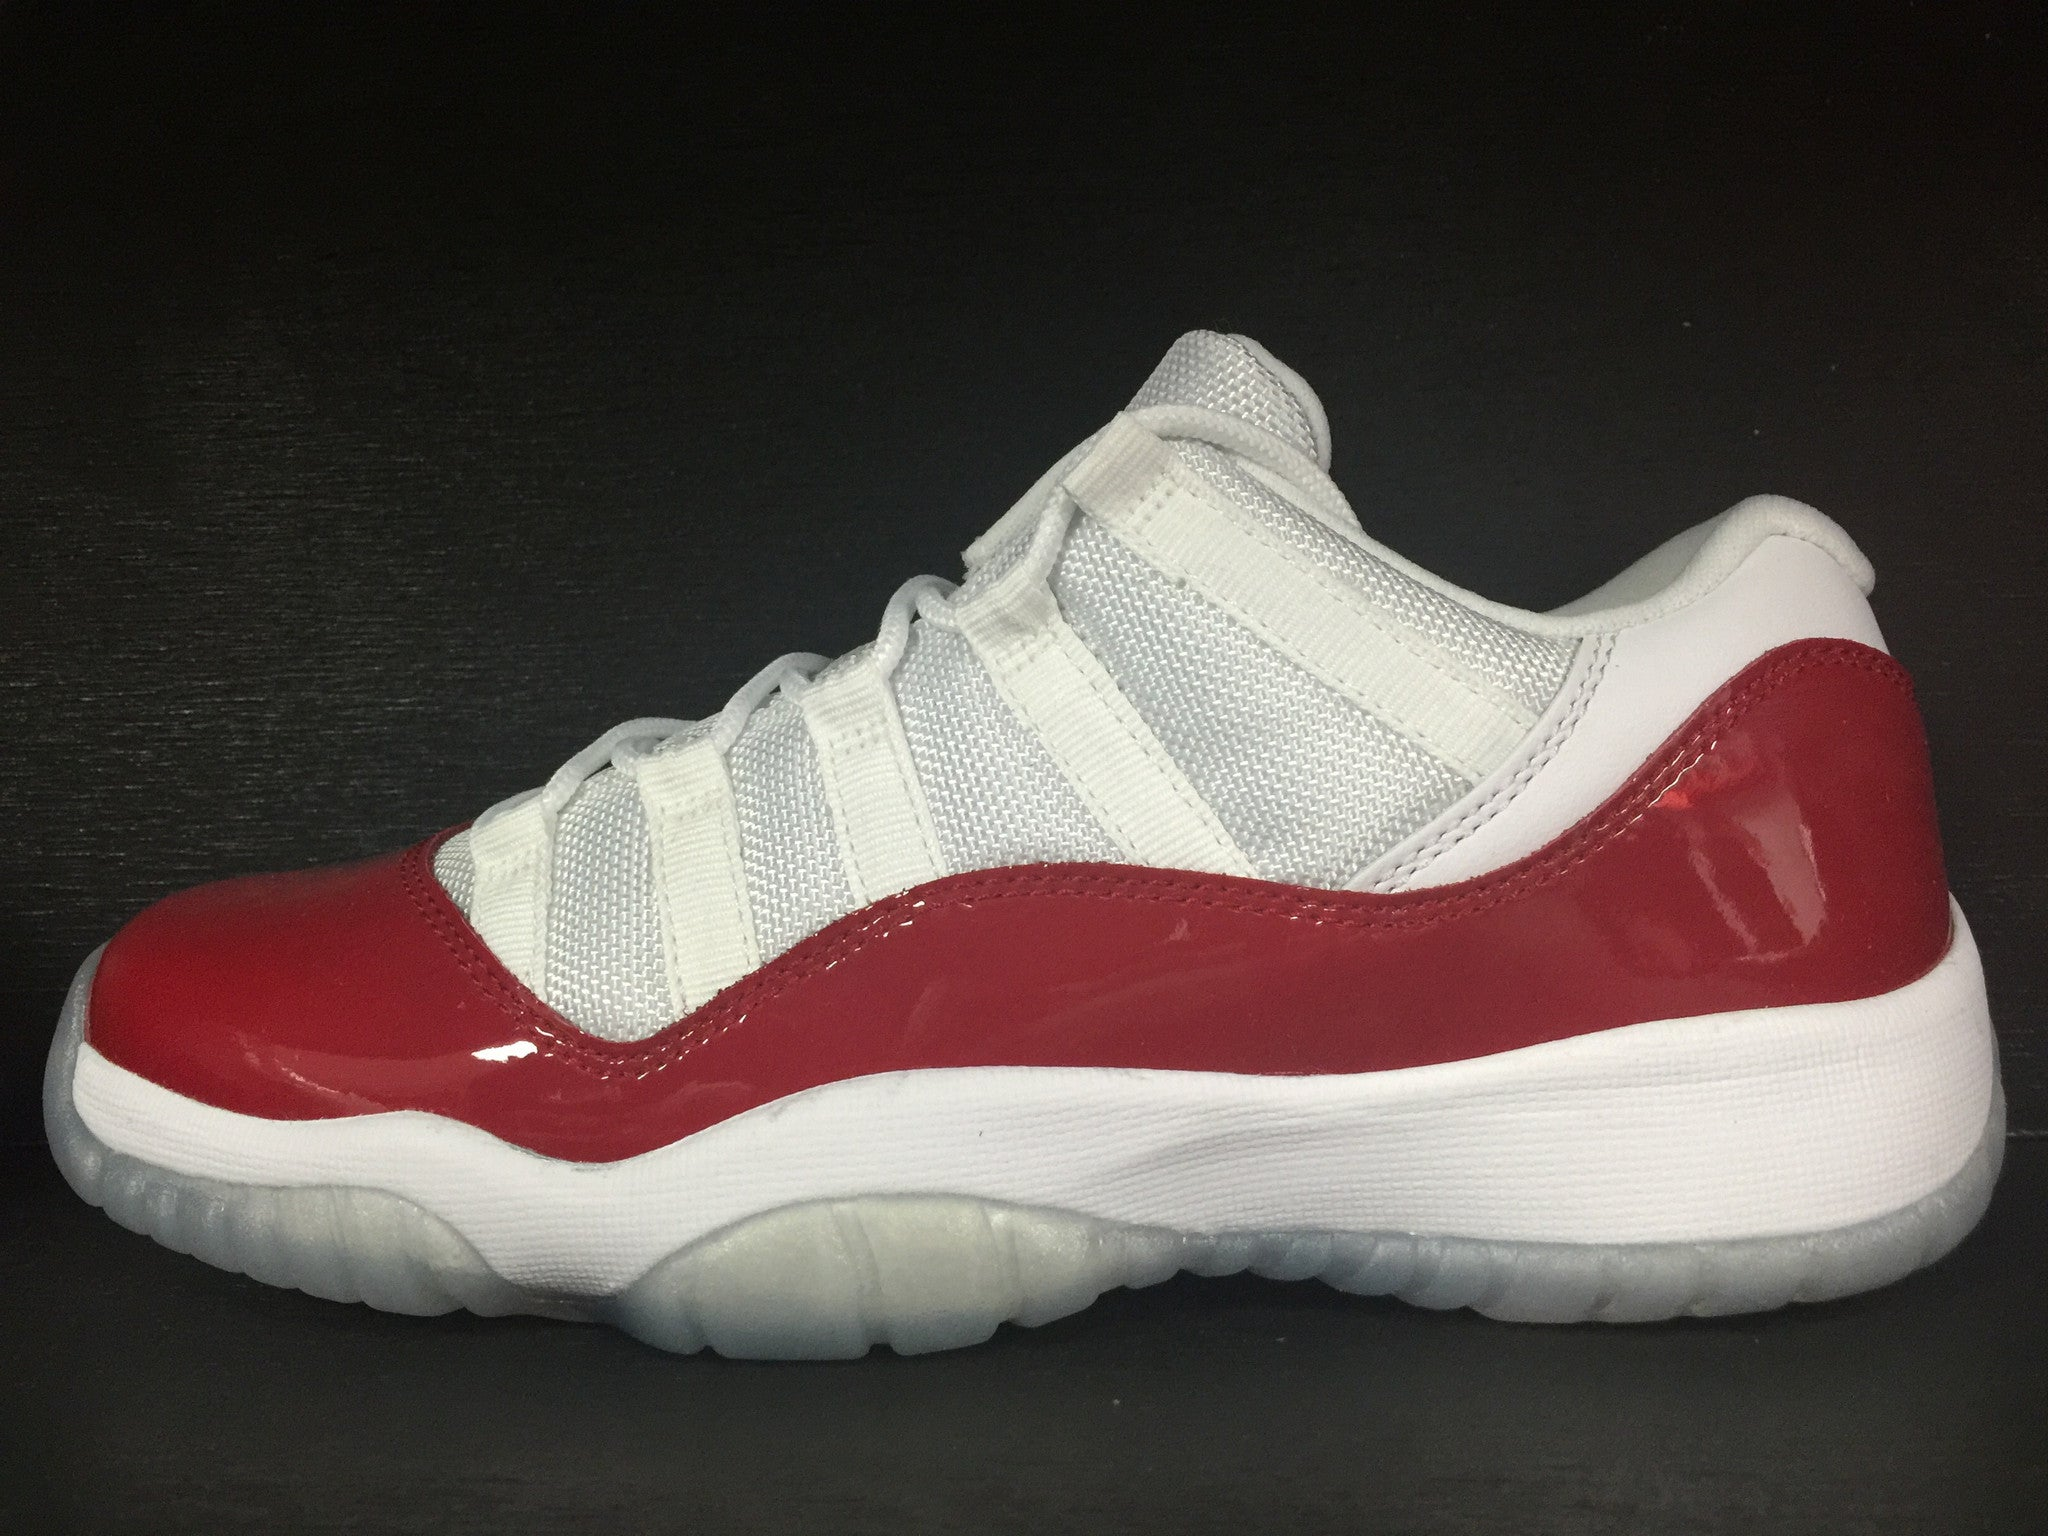 Air Jordan 11 Retro Low 'Varsity Red' gs